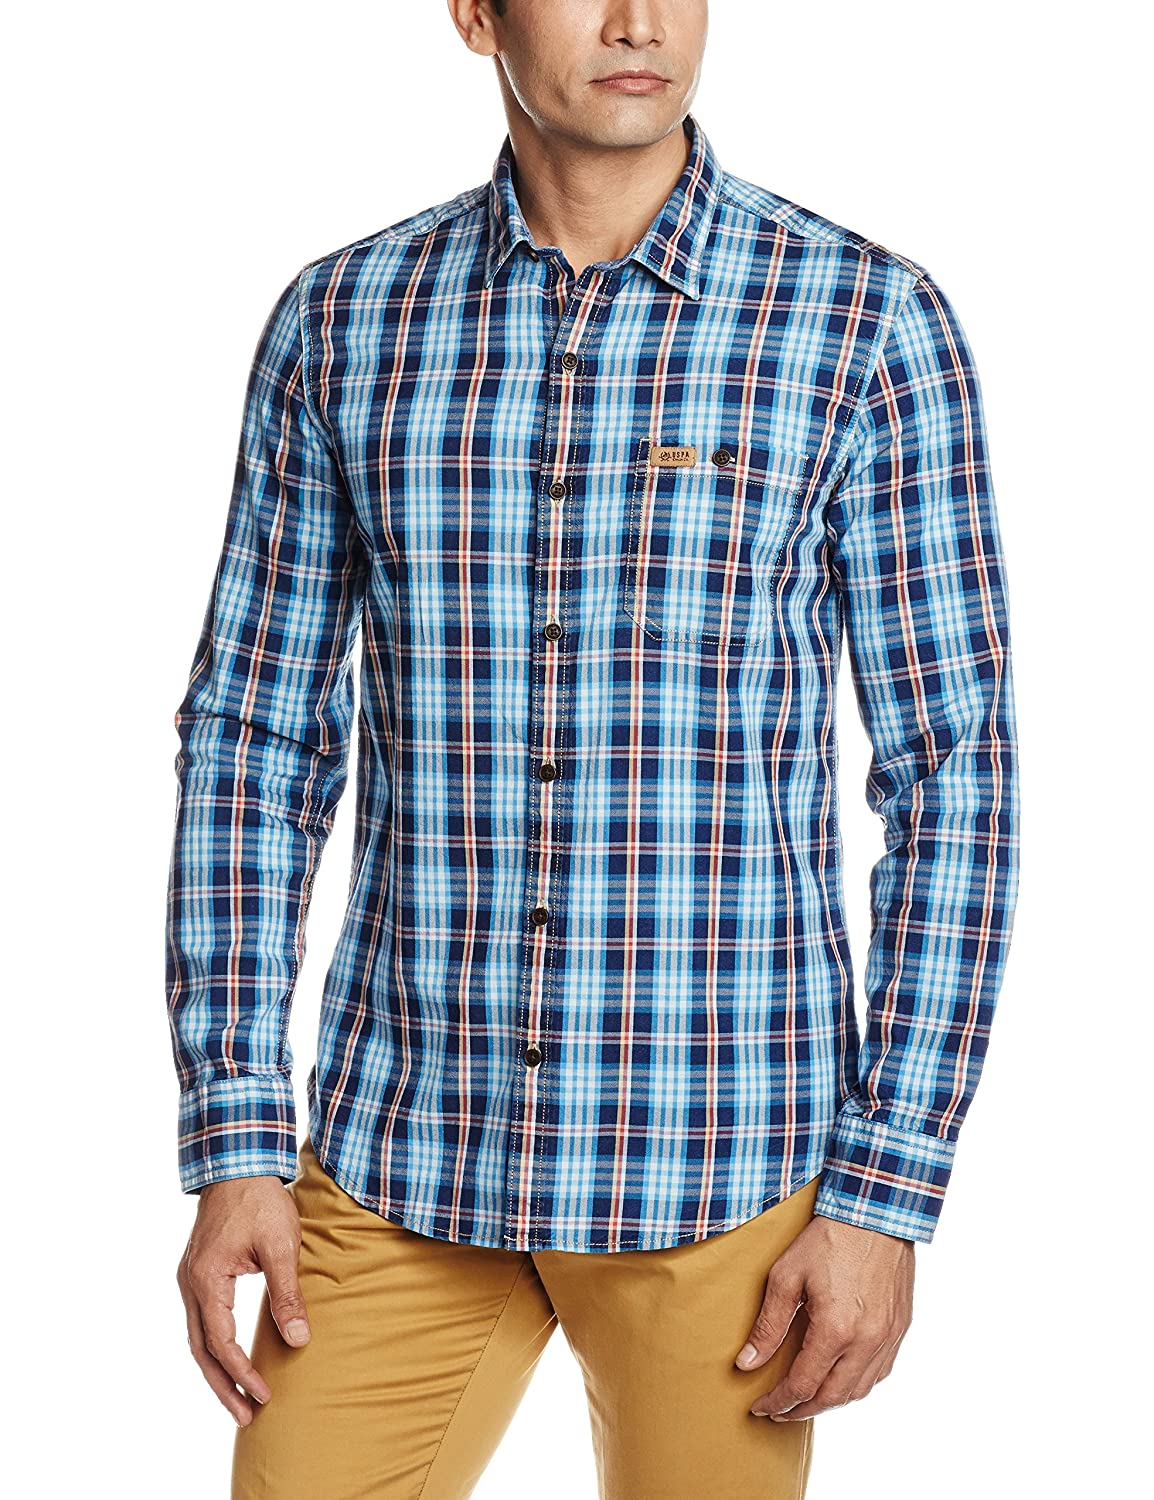 Upto 30-50% off On U.S. Polo Assn Men's Clothing By Amazon | U.S.Polo.Assn. Men's Casual Shirt @ Rs.1,149